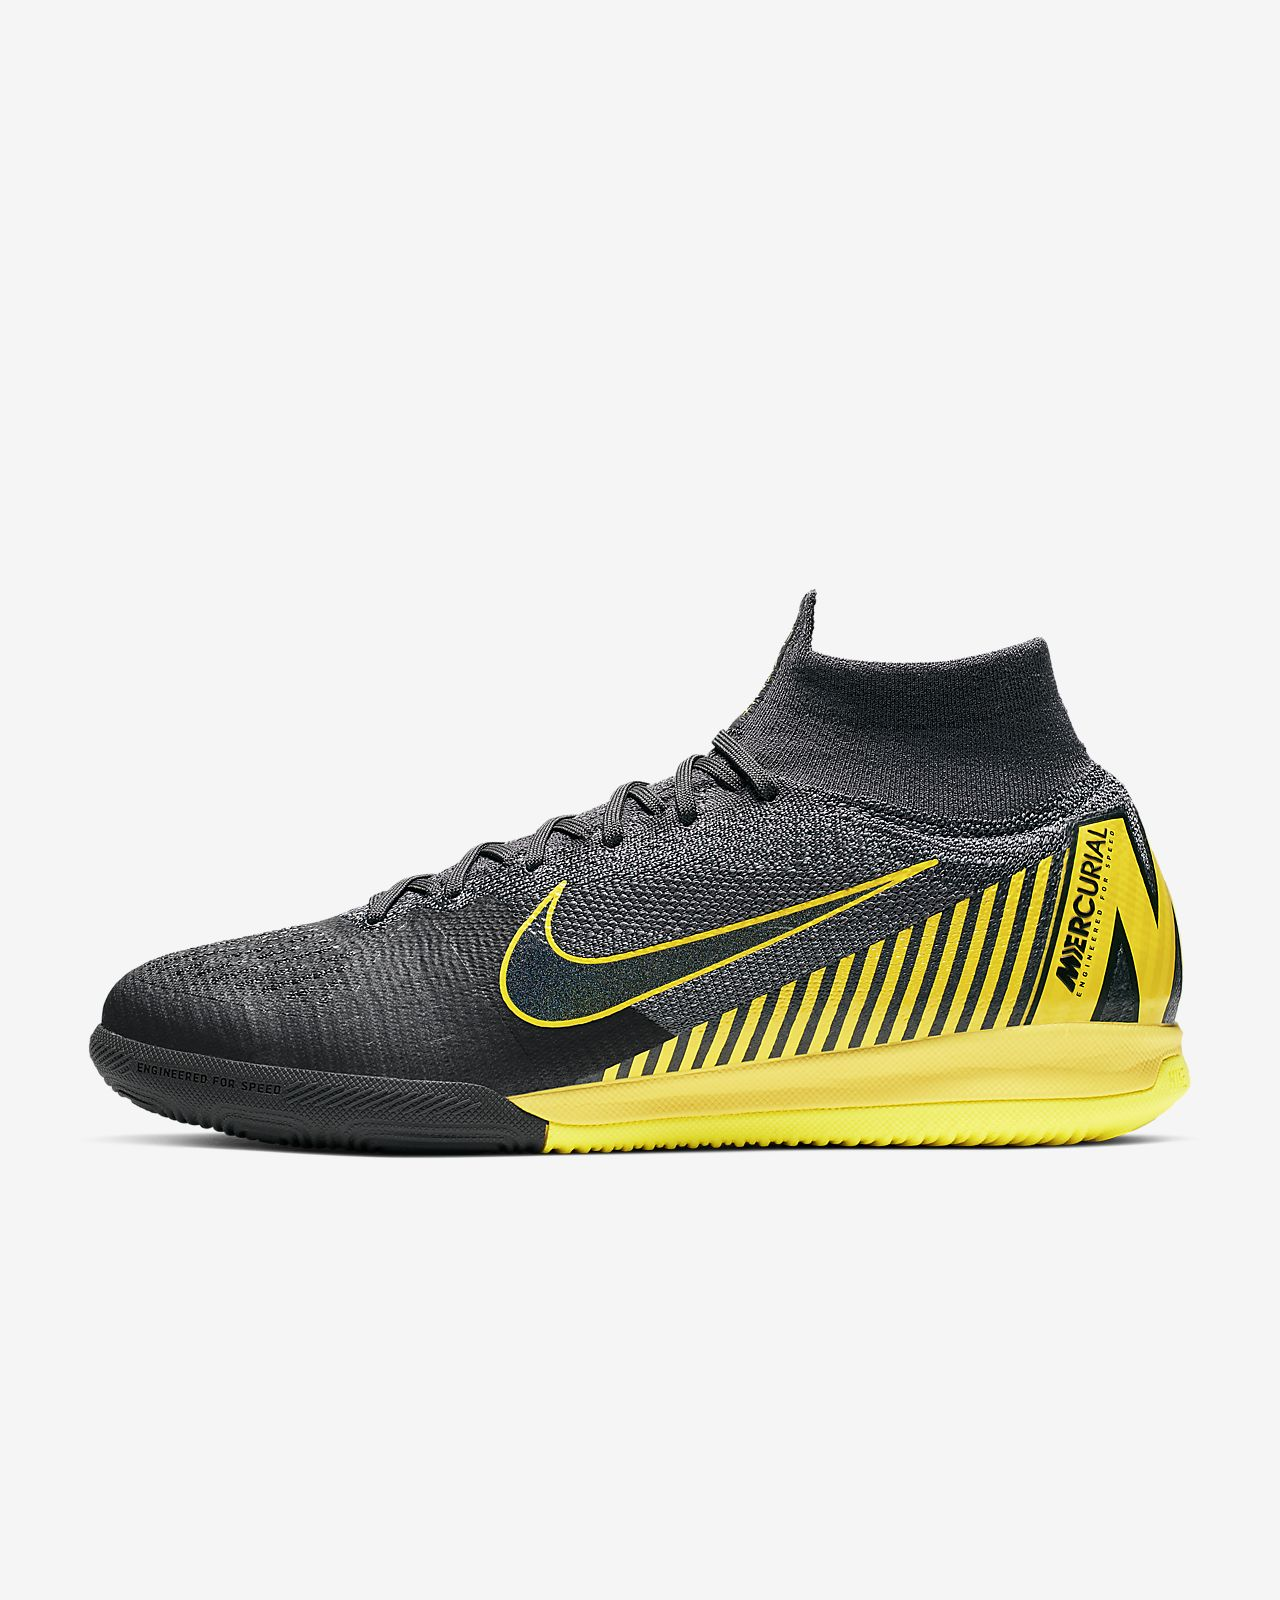 0935b0dc140 Chaussure de football en salle à crampons Nike SuperflyX 6 Elite IC Game  Over pour Homme